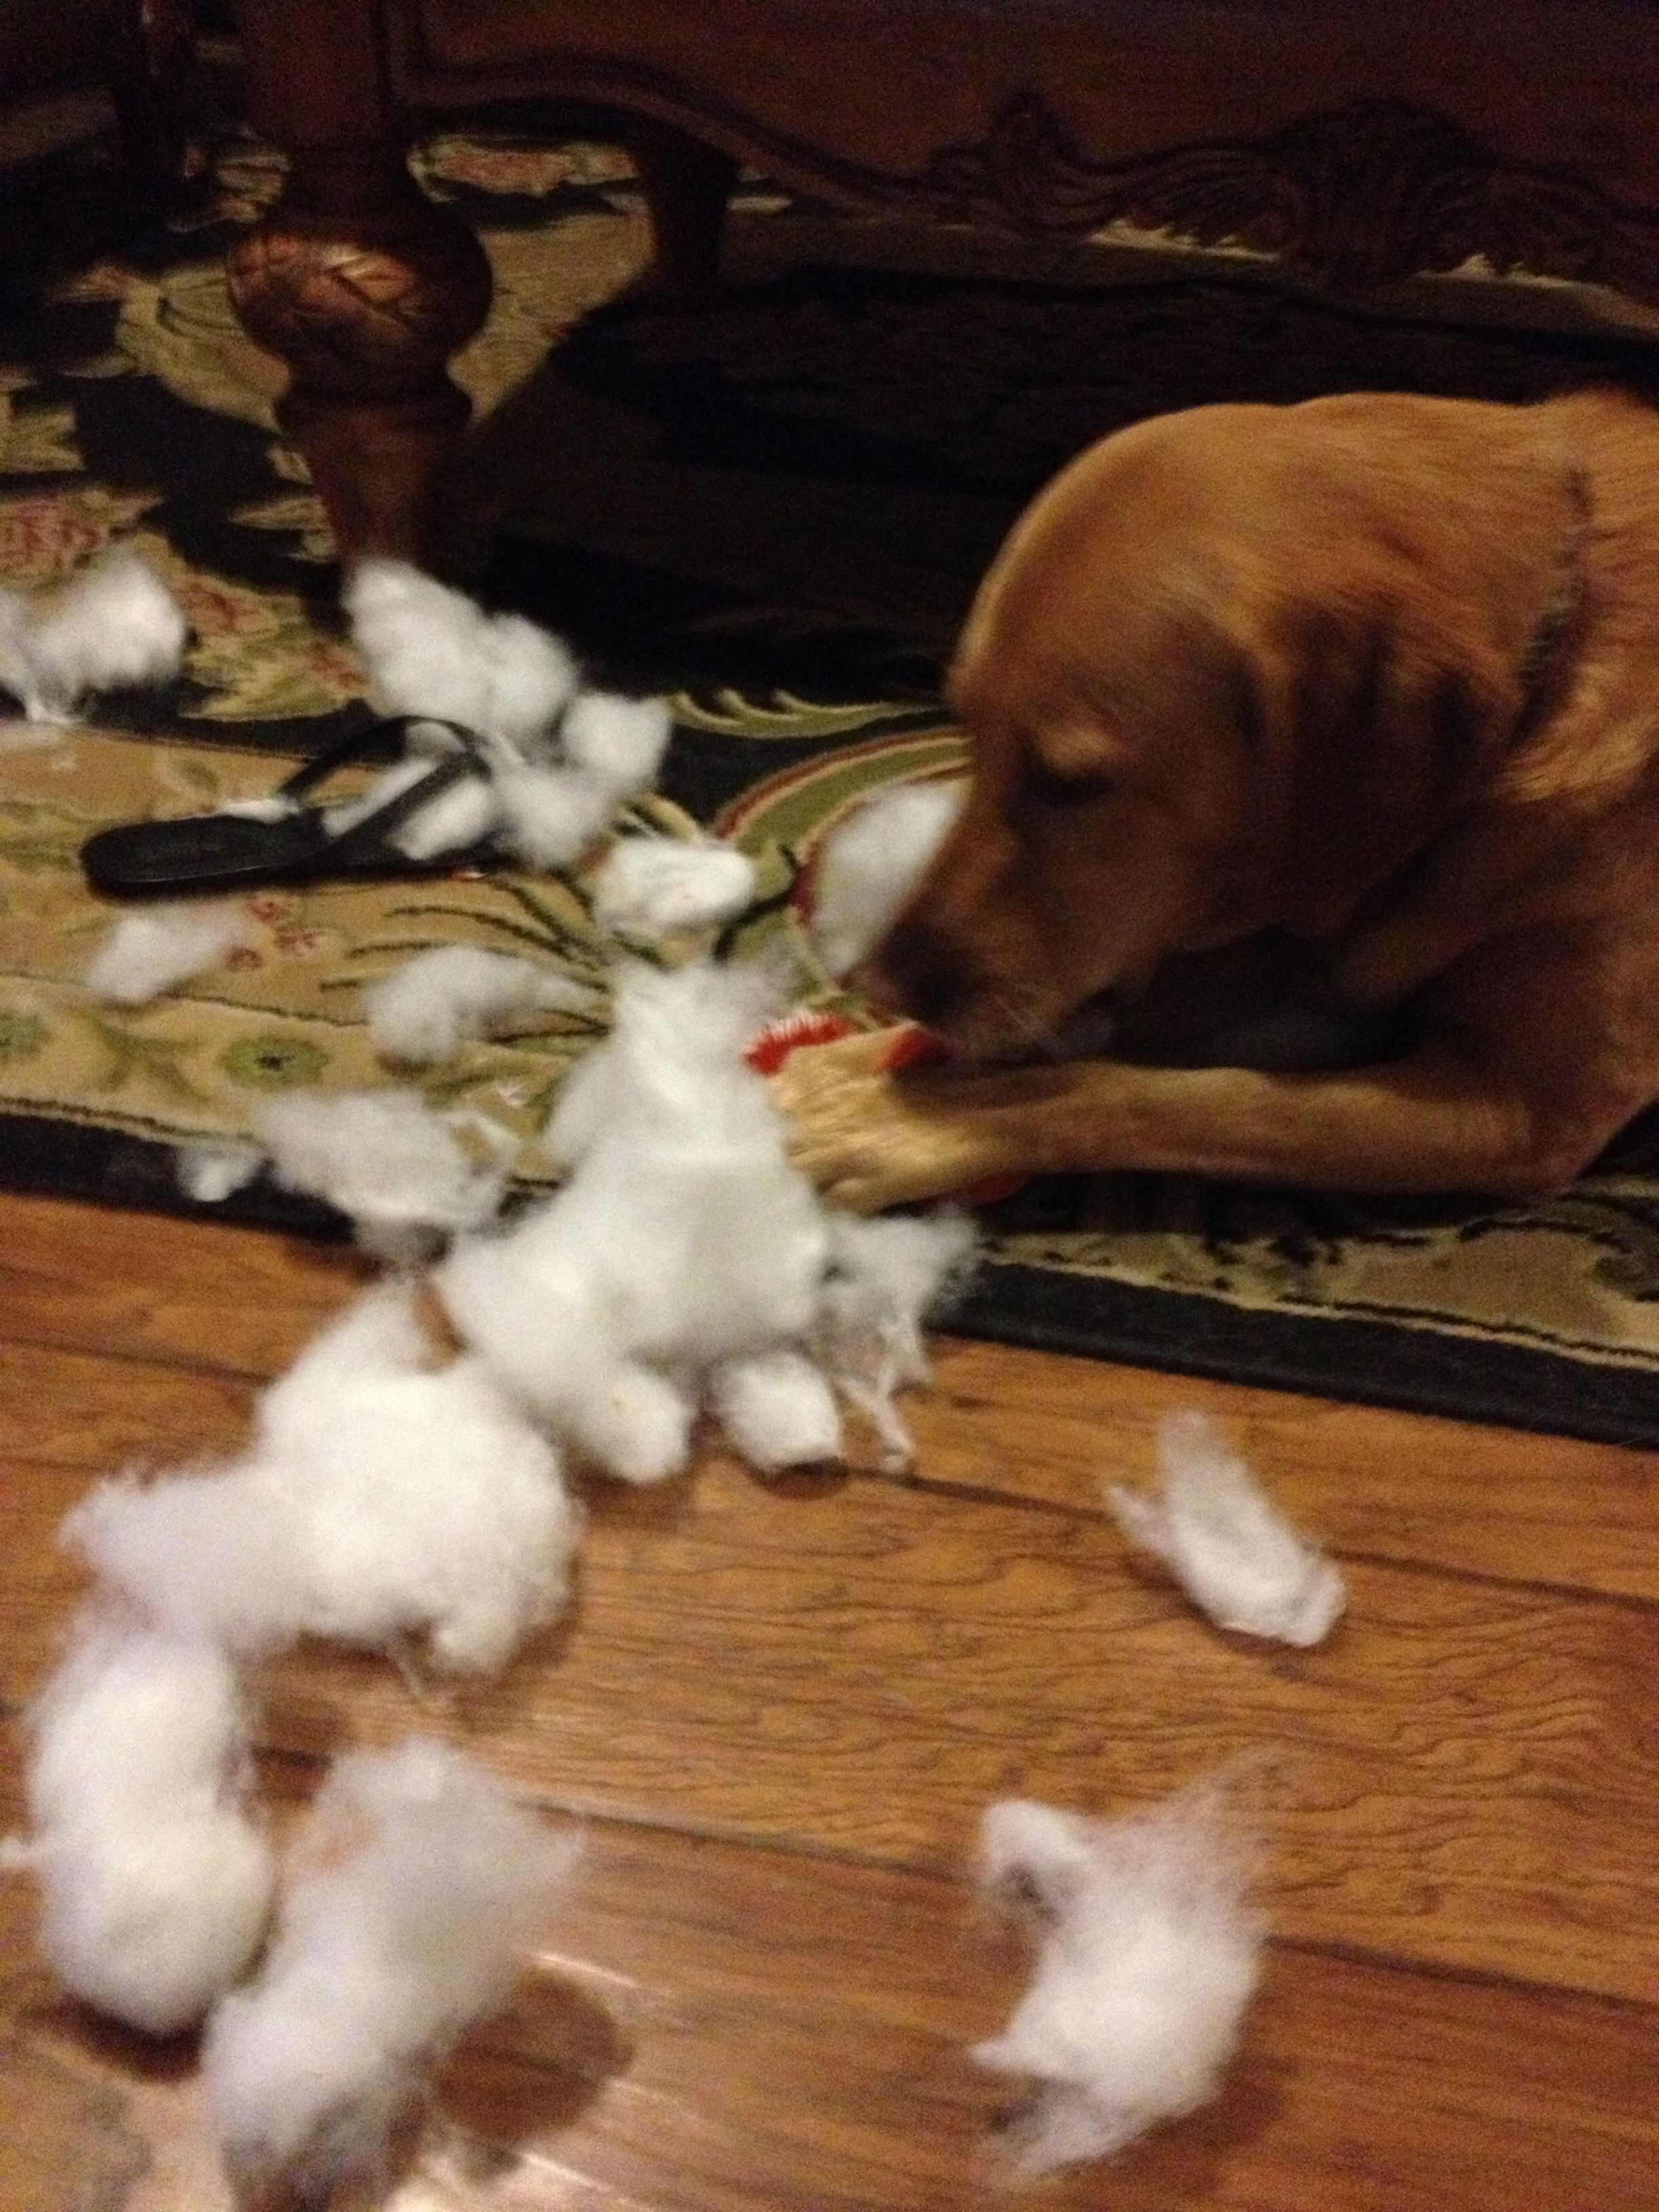 Abby S Favorite Expensive Dog Toys That Last About Five Minutes